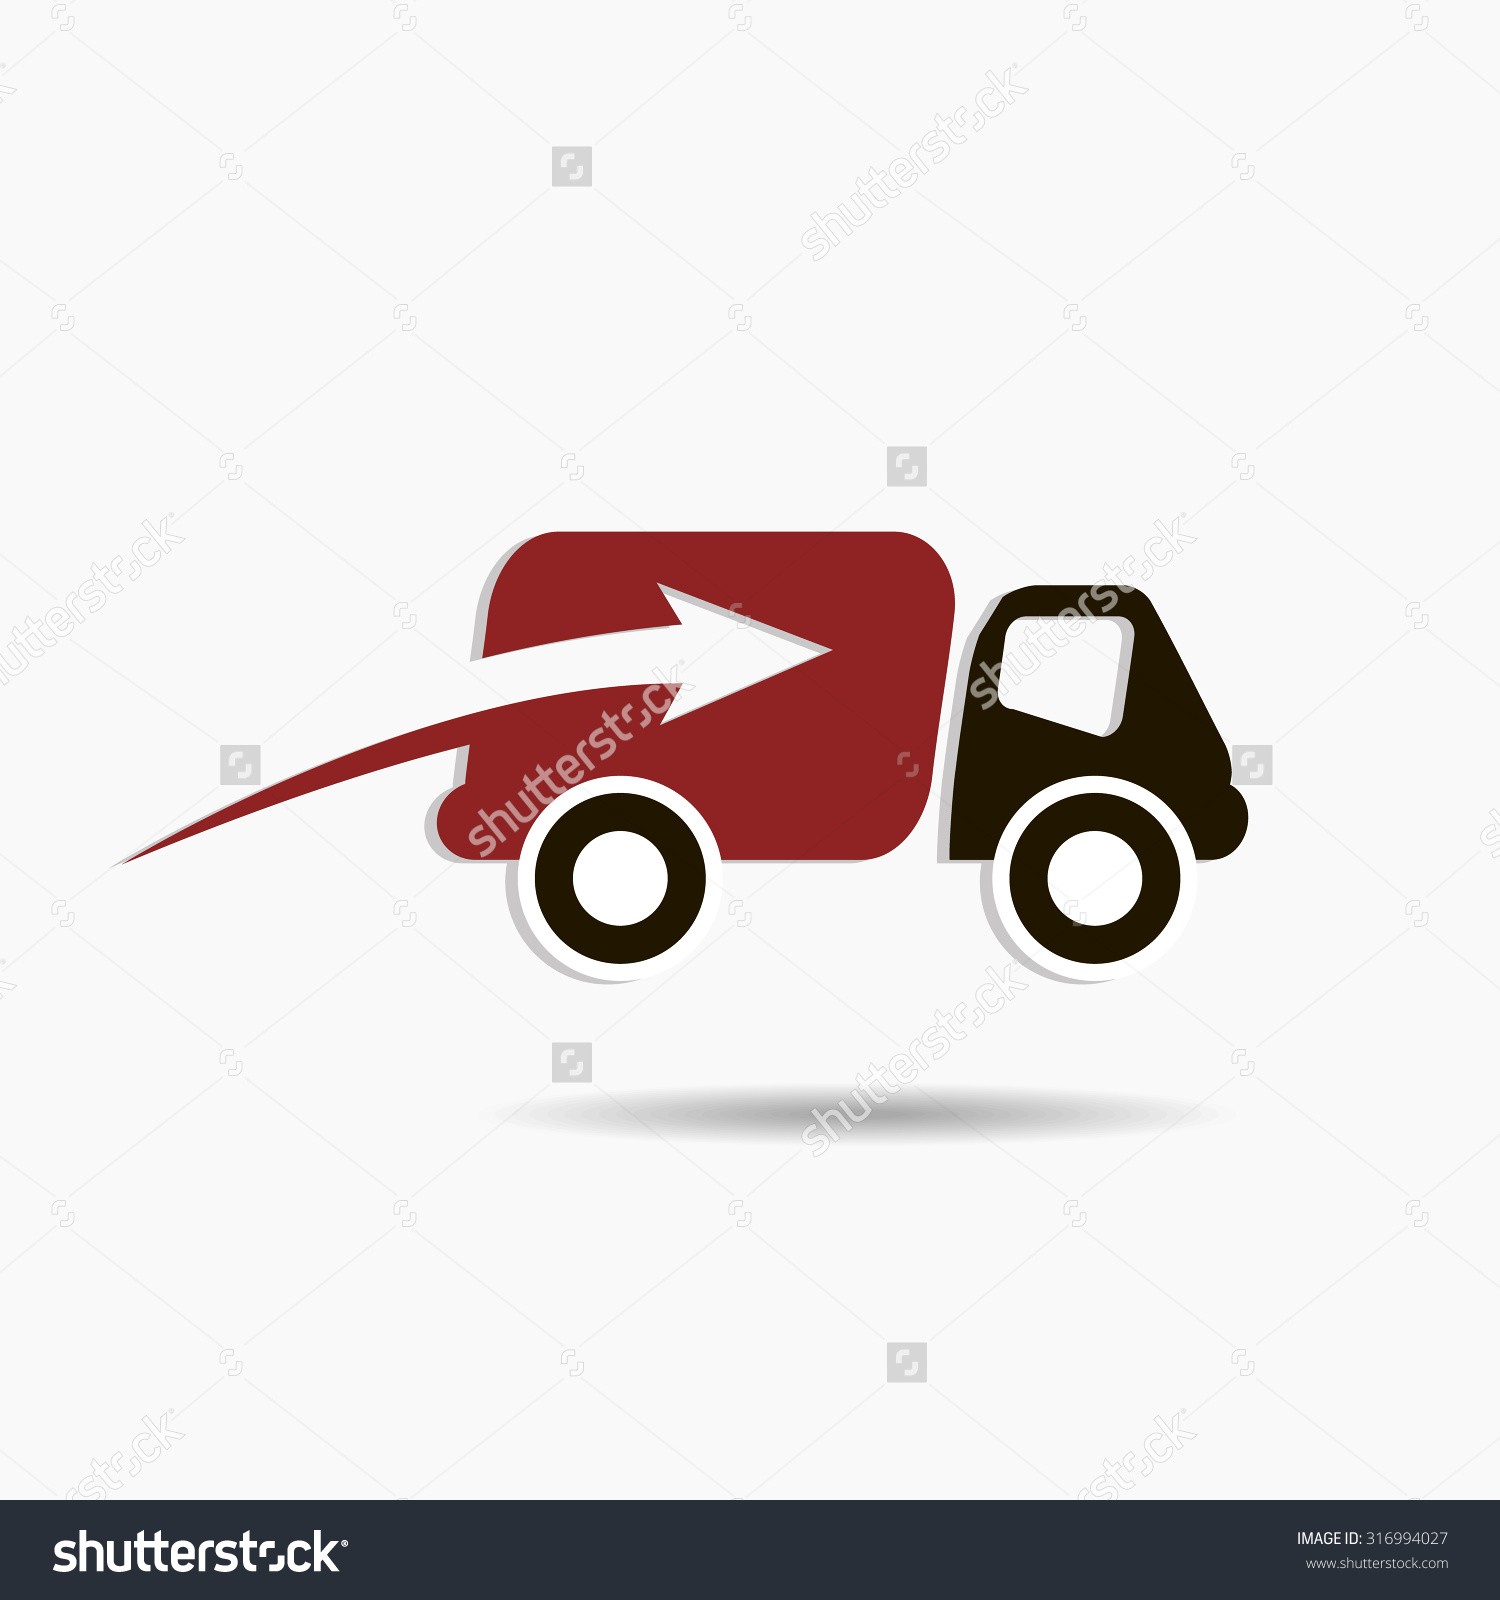 Fast Delivery Truck Logo Red Black Stock Vector 316994027.